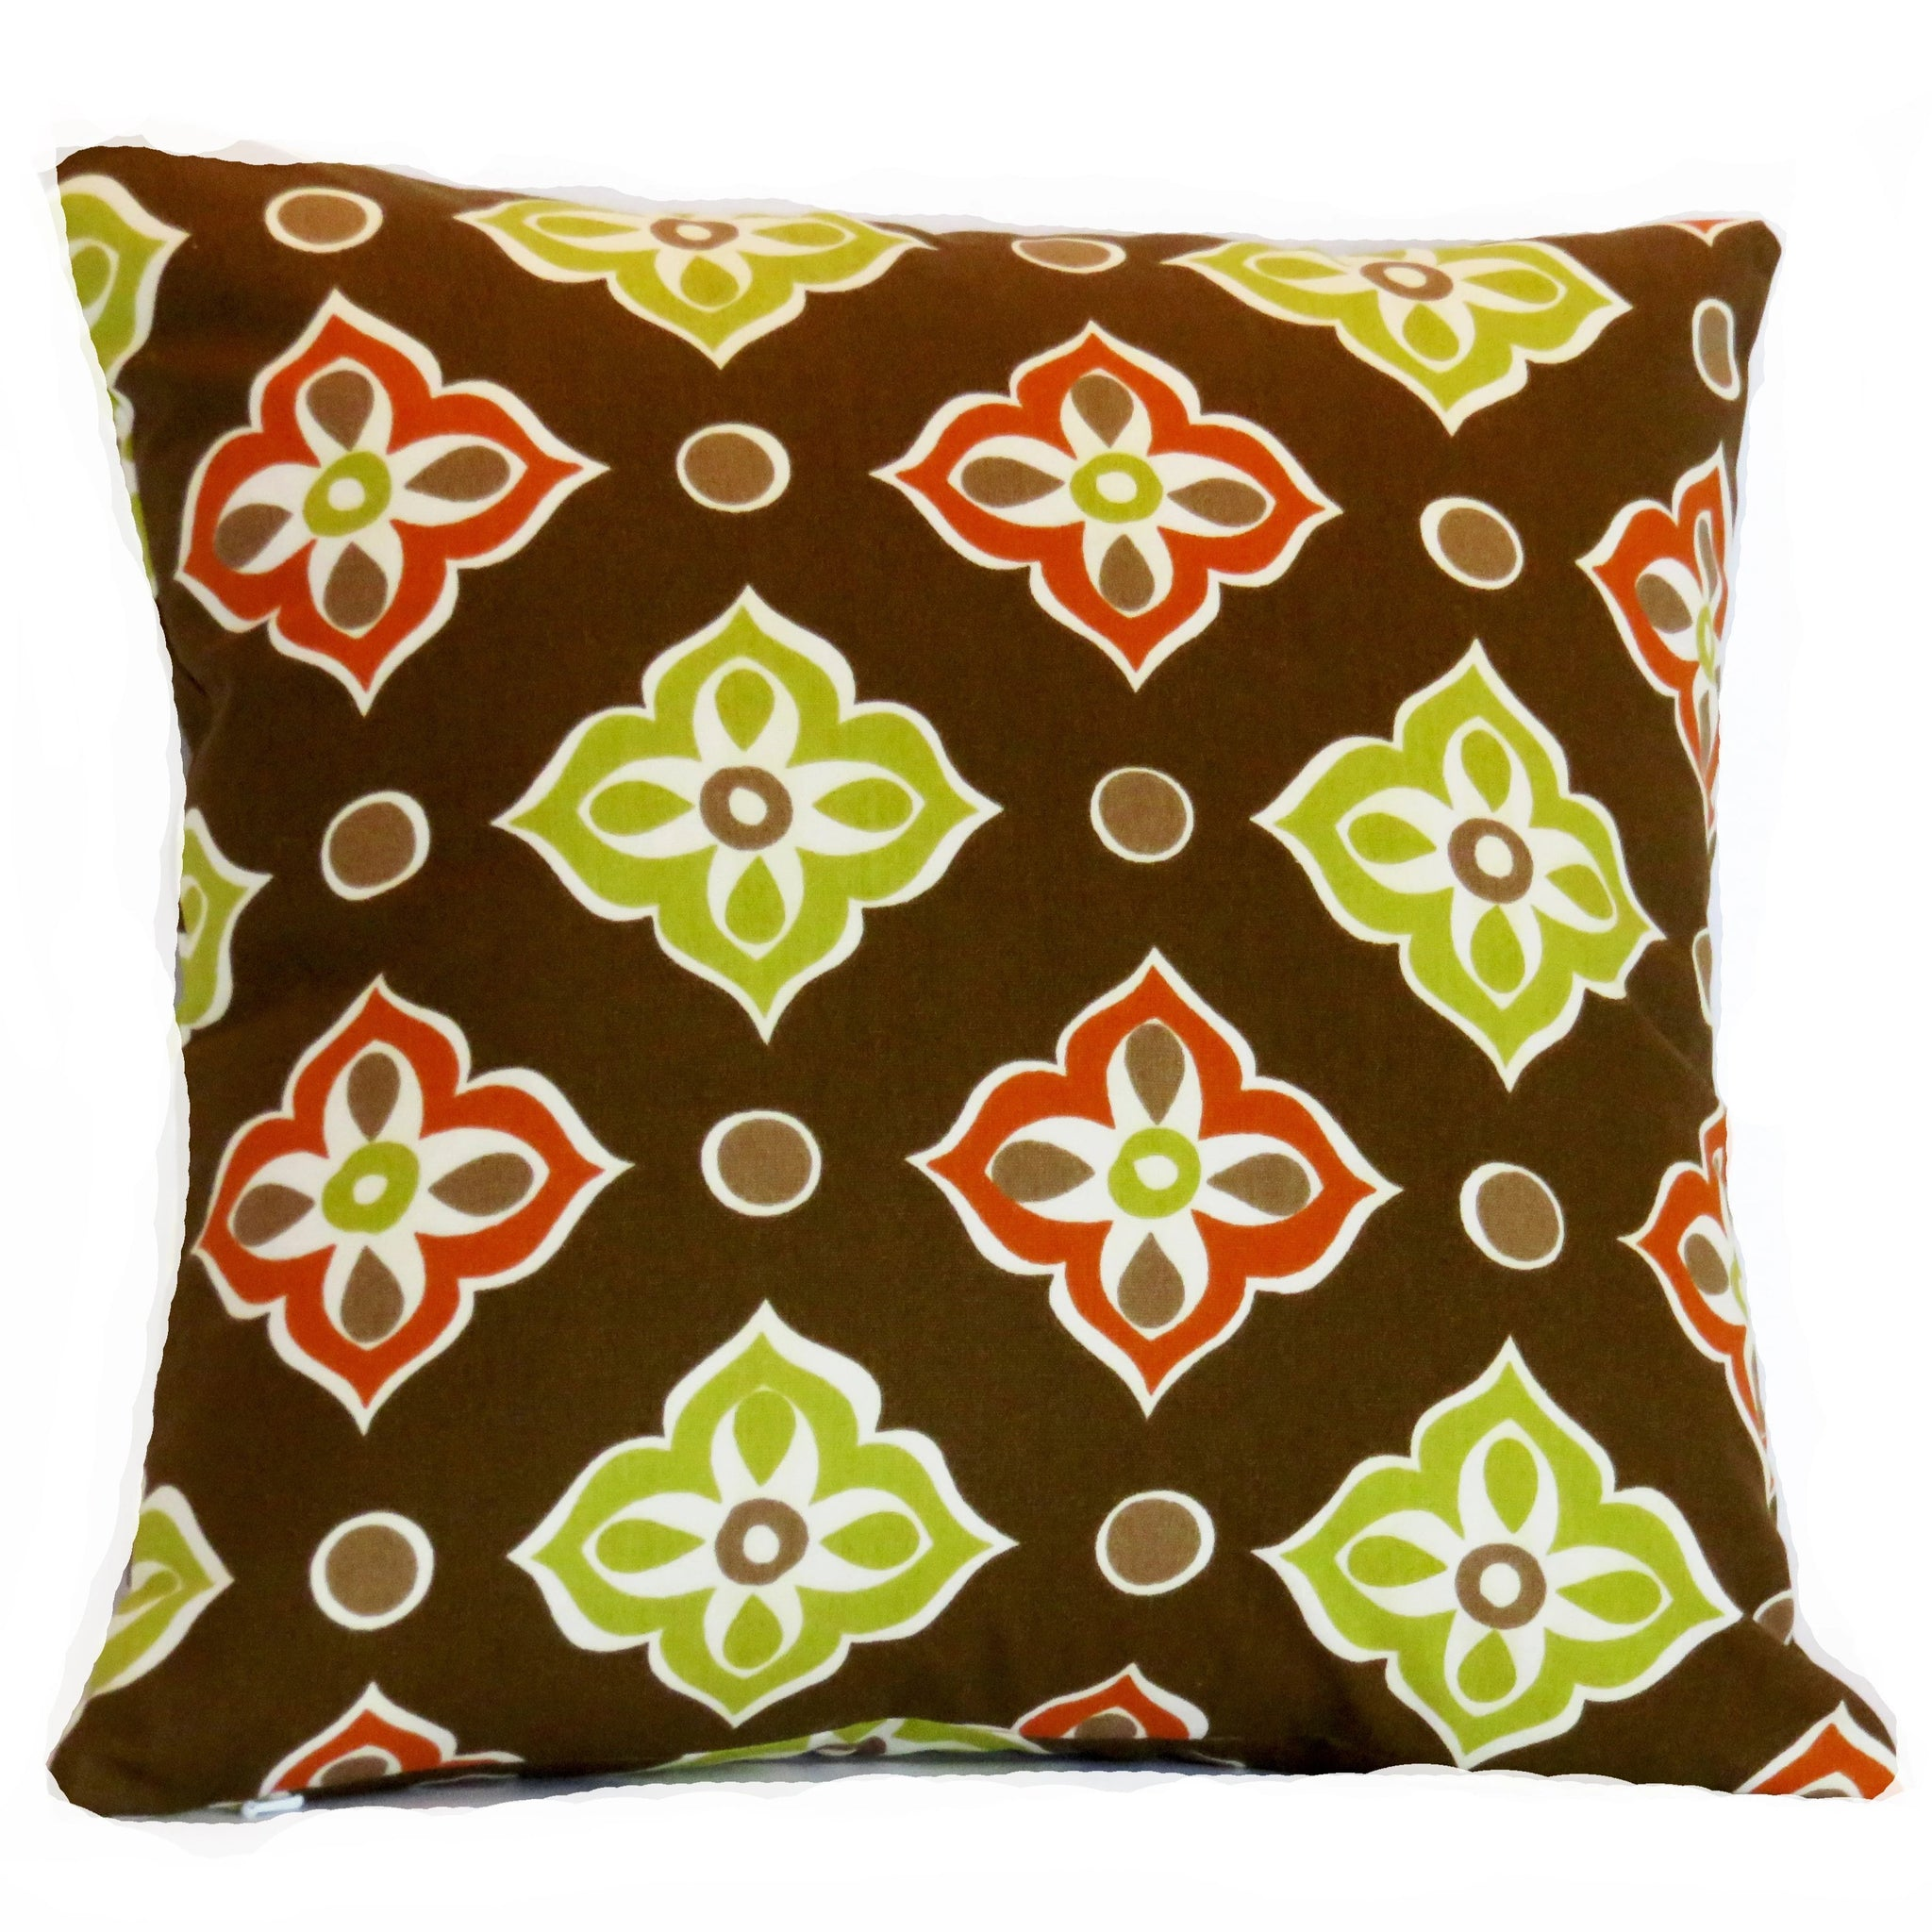 Brown Mod Floral Pillow Cover,  Retro Geometric with Lime and Orange